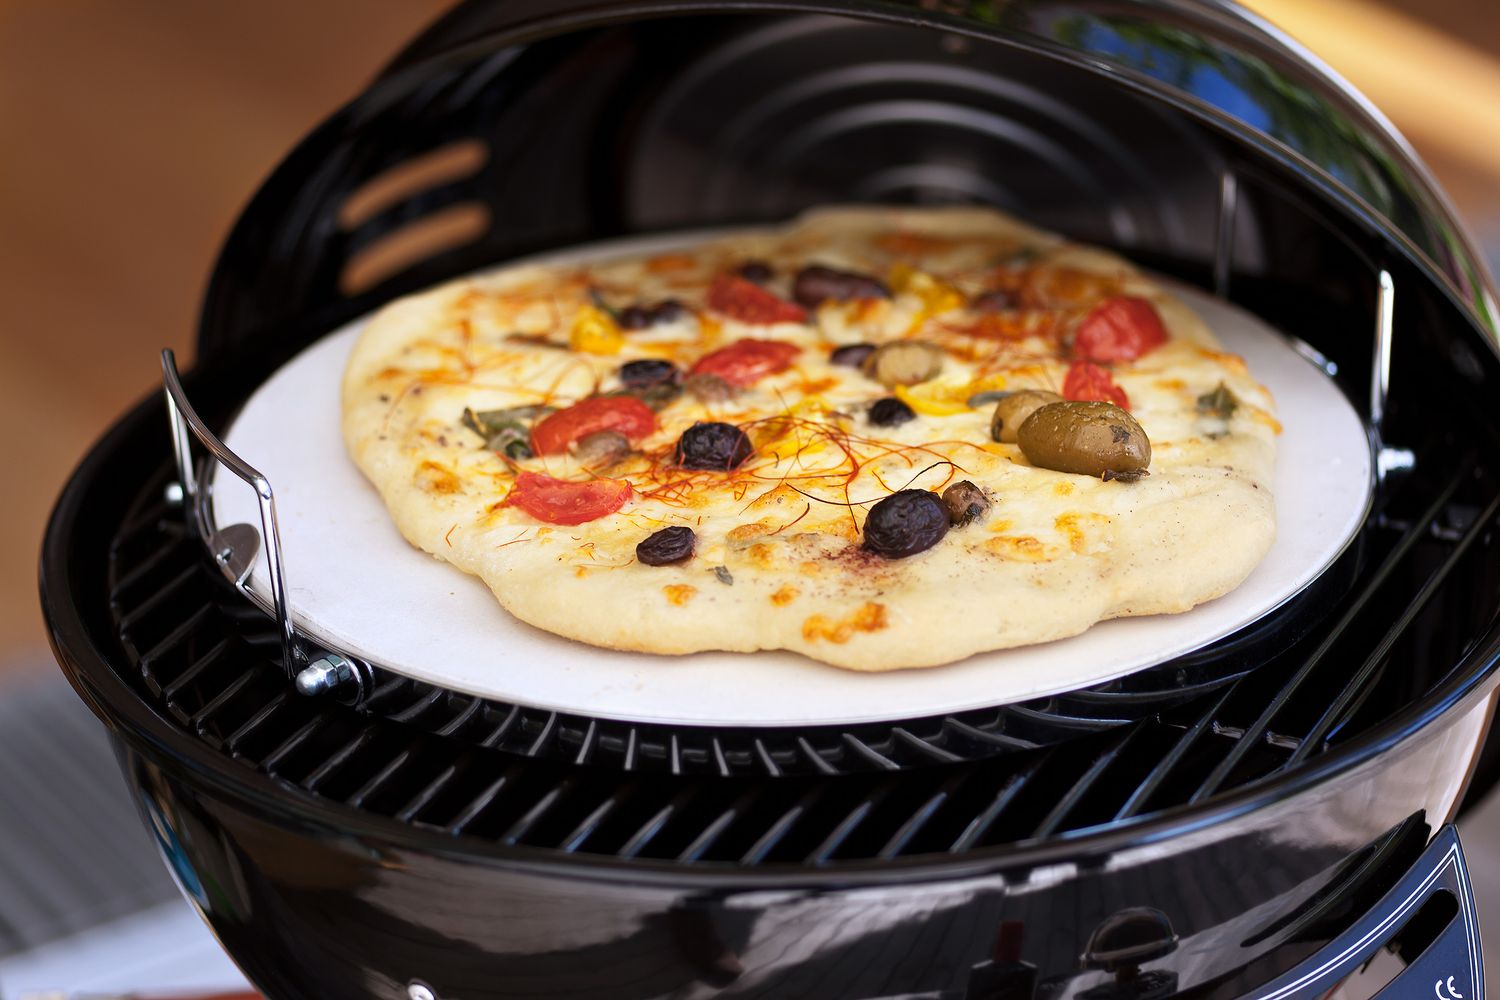 Pizzastein Für Gasgrill Outdoorchef : Outdoorchef city pizzastein und brotbackstein 32cm